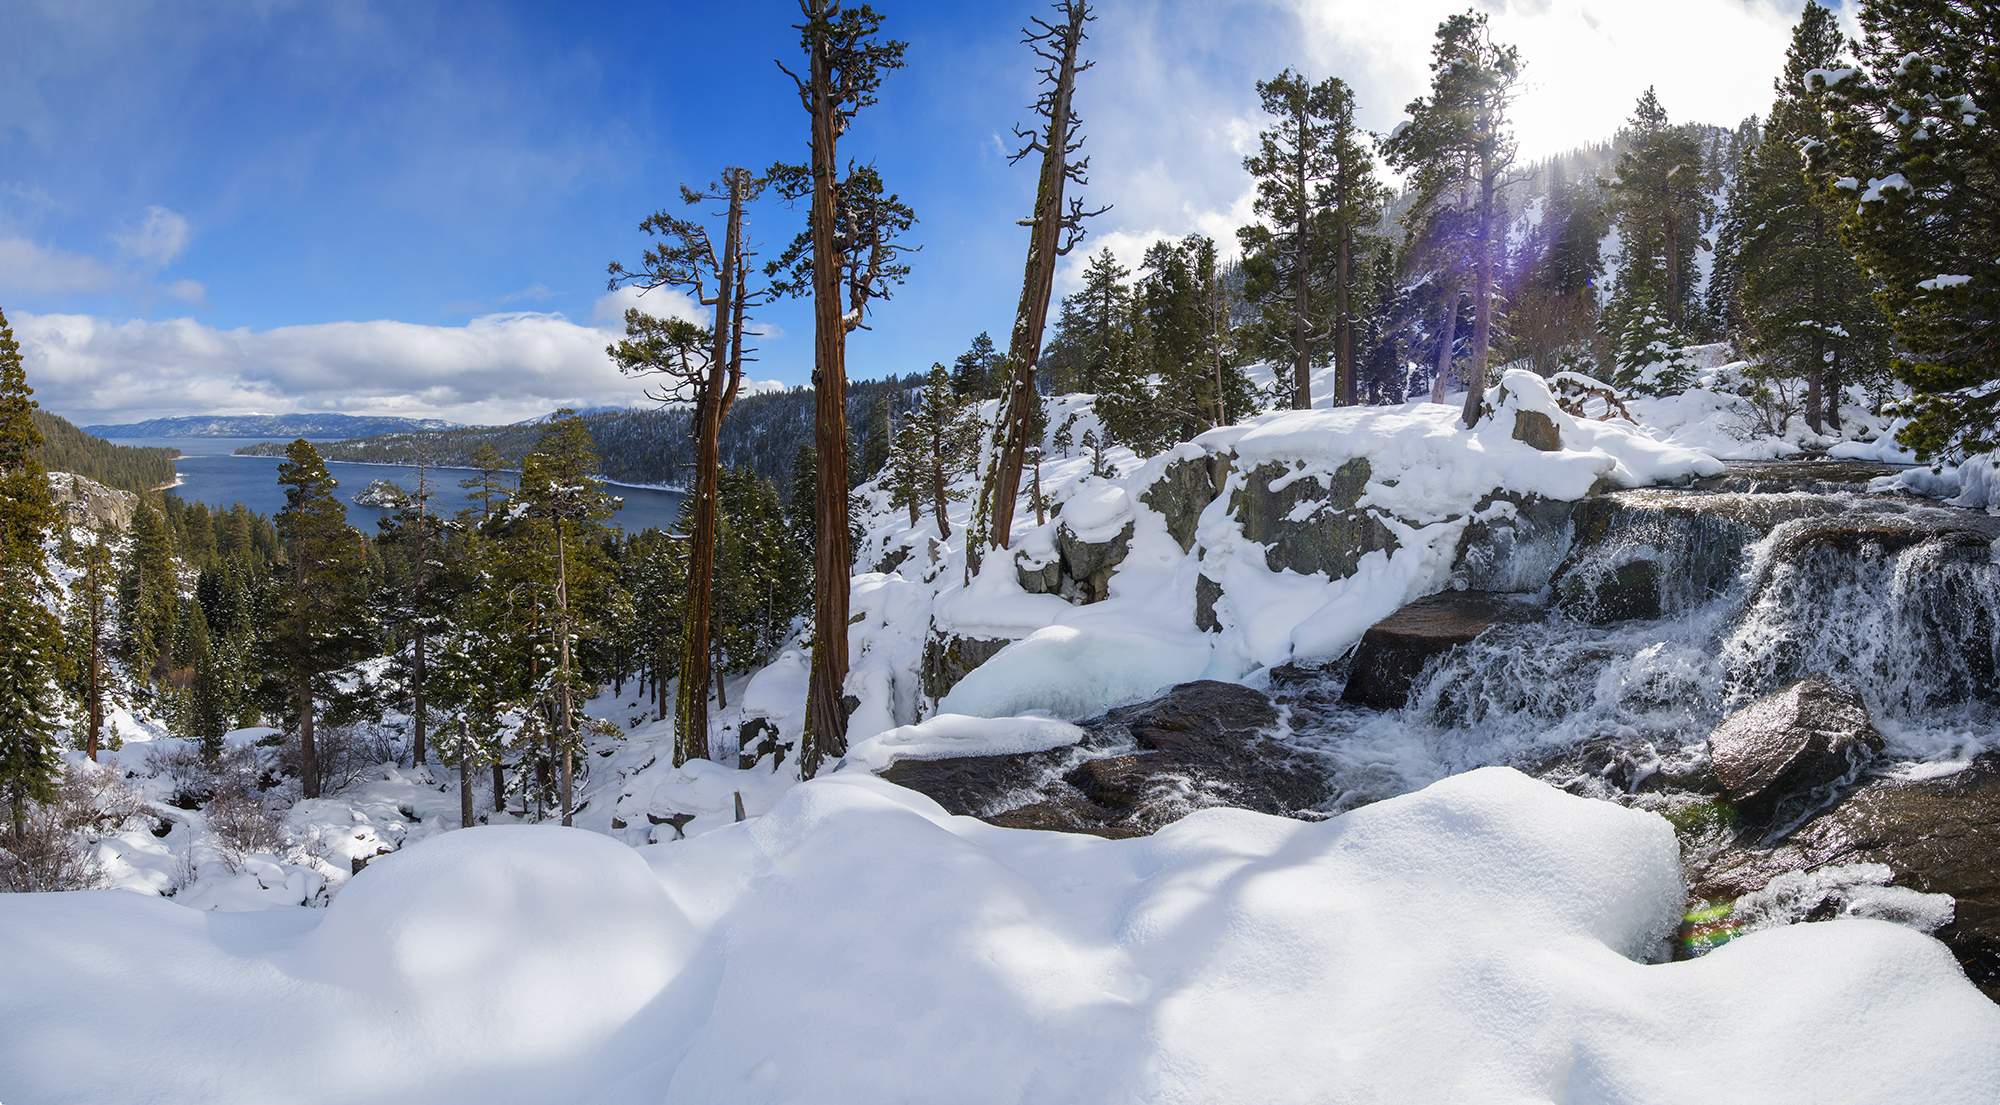 Emerald Bay Winter Wonderland